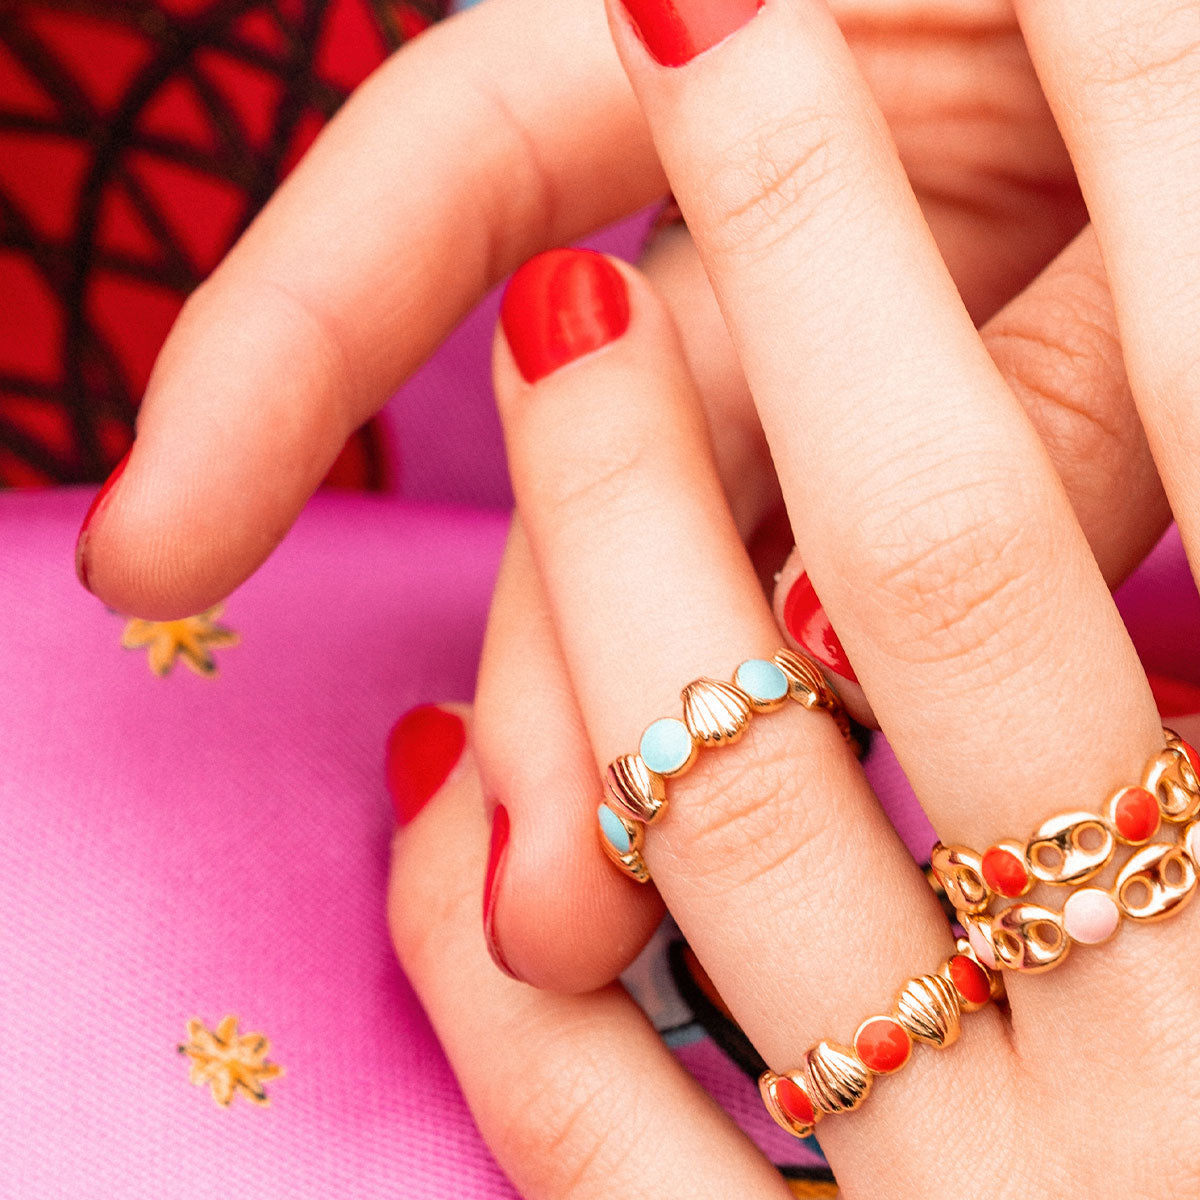 Rings - Ring - Enameled Cabochon Coral Dots and Shells - 2 | Rue des Mille